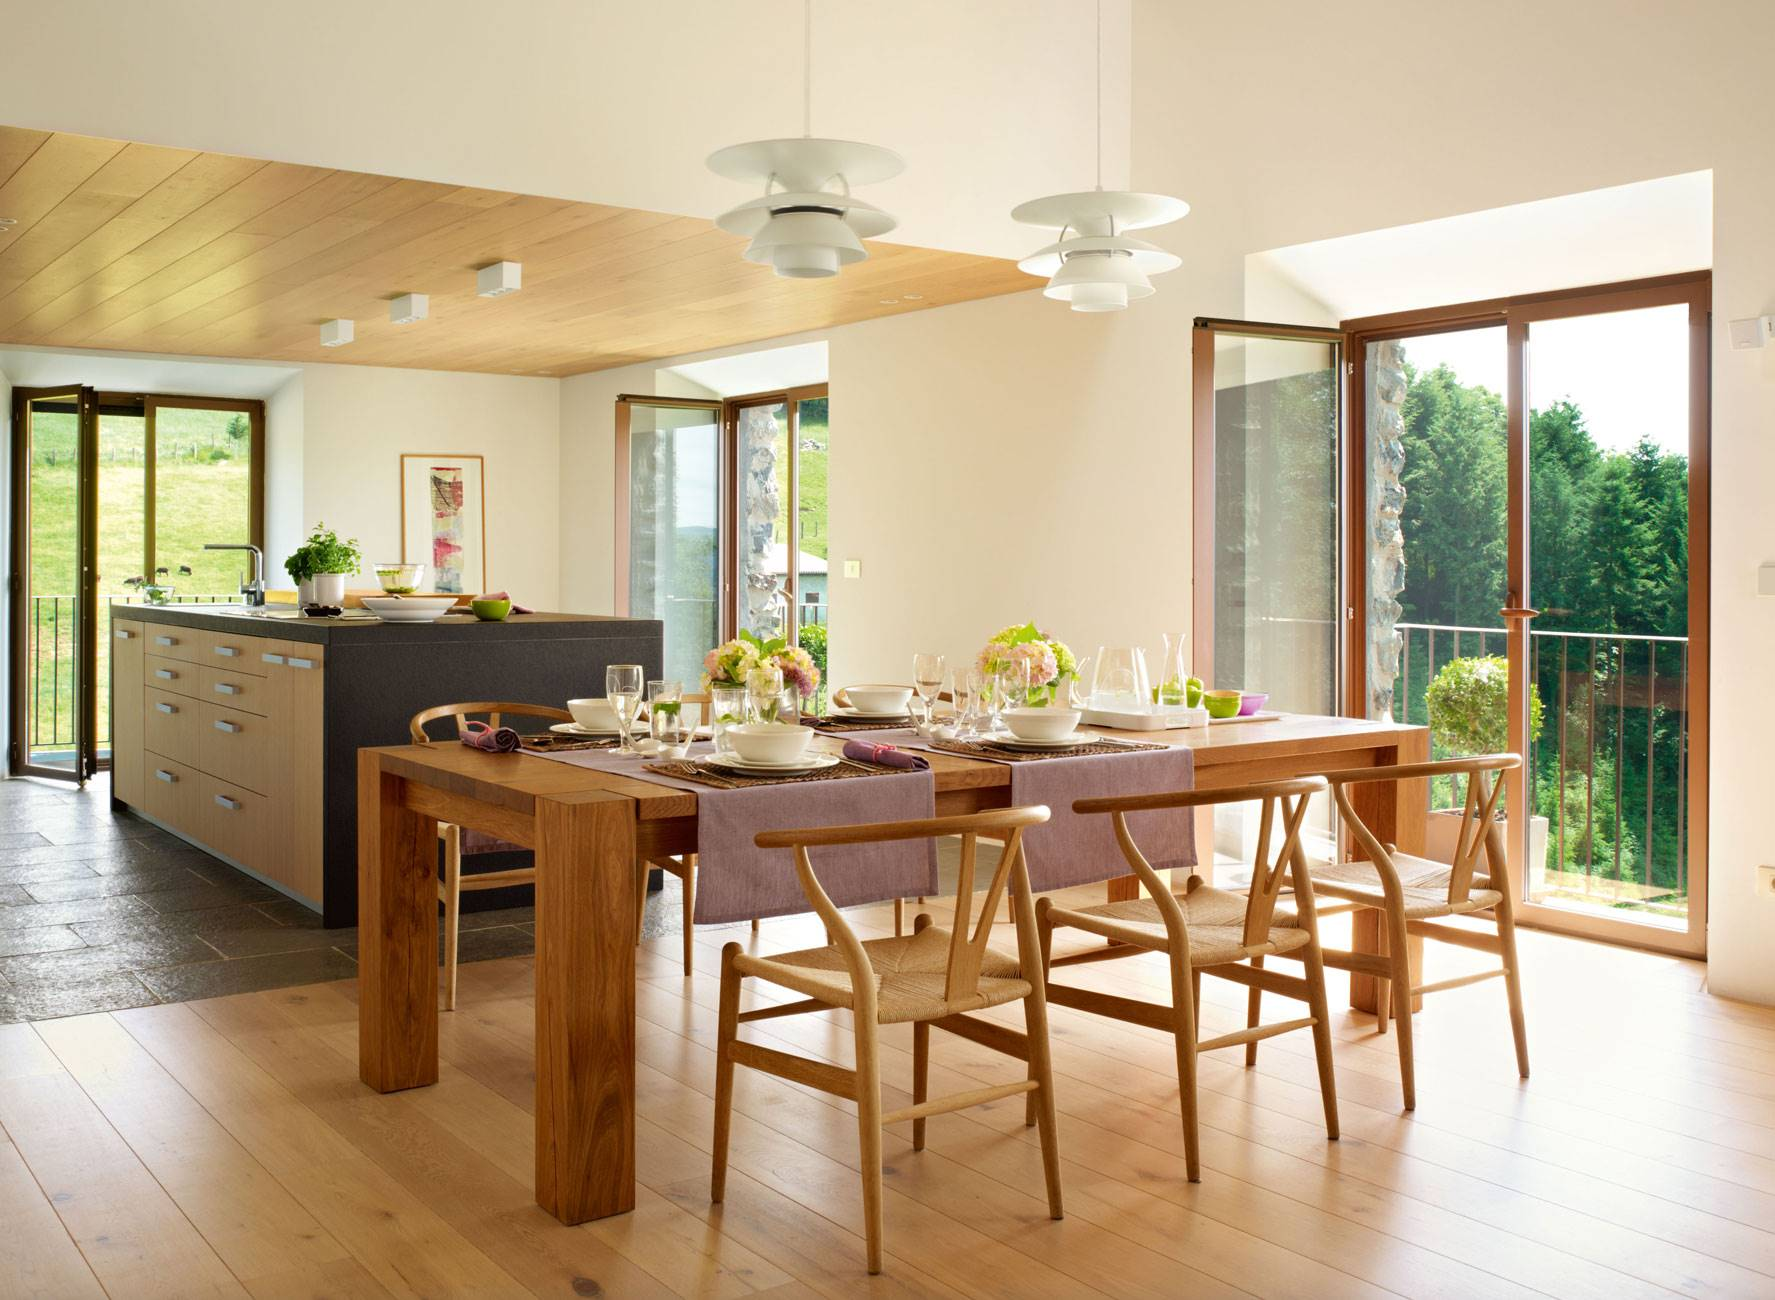 kitchen-open-to-dining-room-with-super-island 326965. Between the meadows